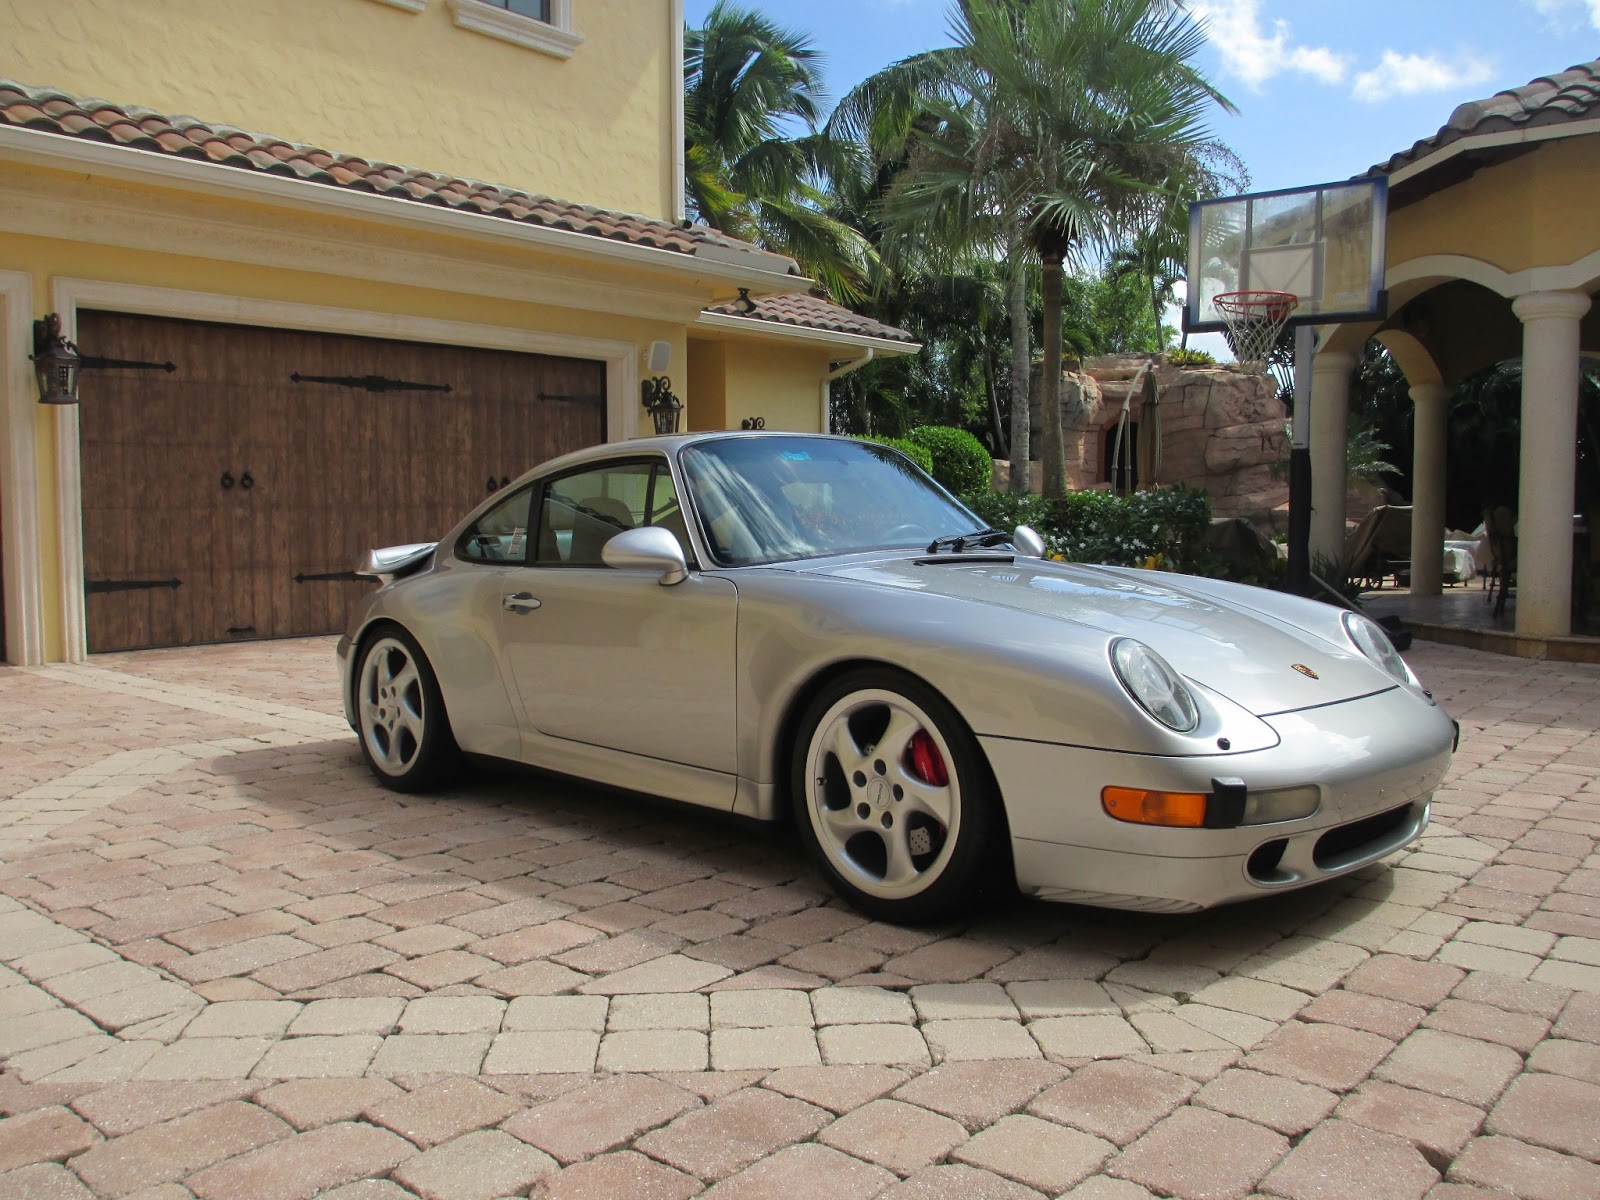 1997 Porsche 911 Turbo Coupe for sale in USA: USD151,000 | All Cars ...